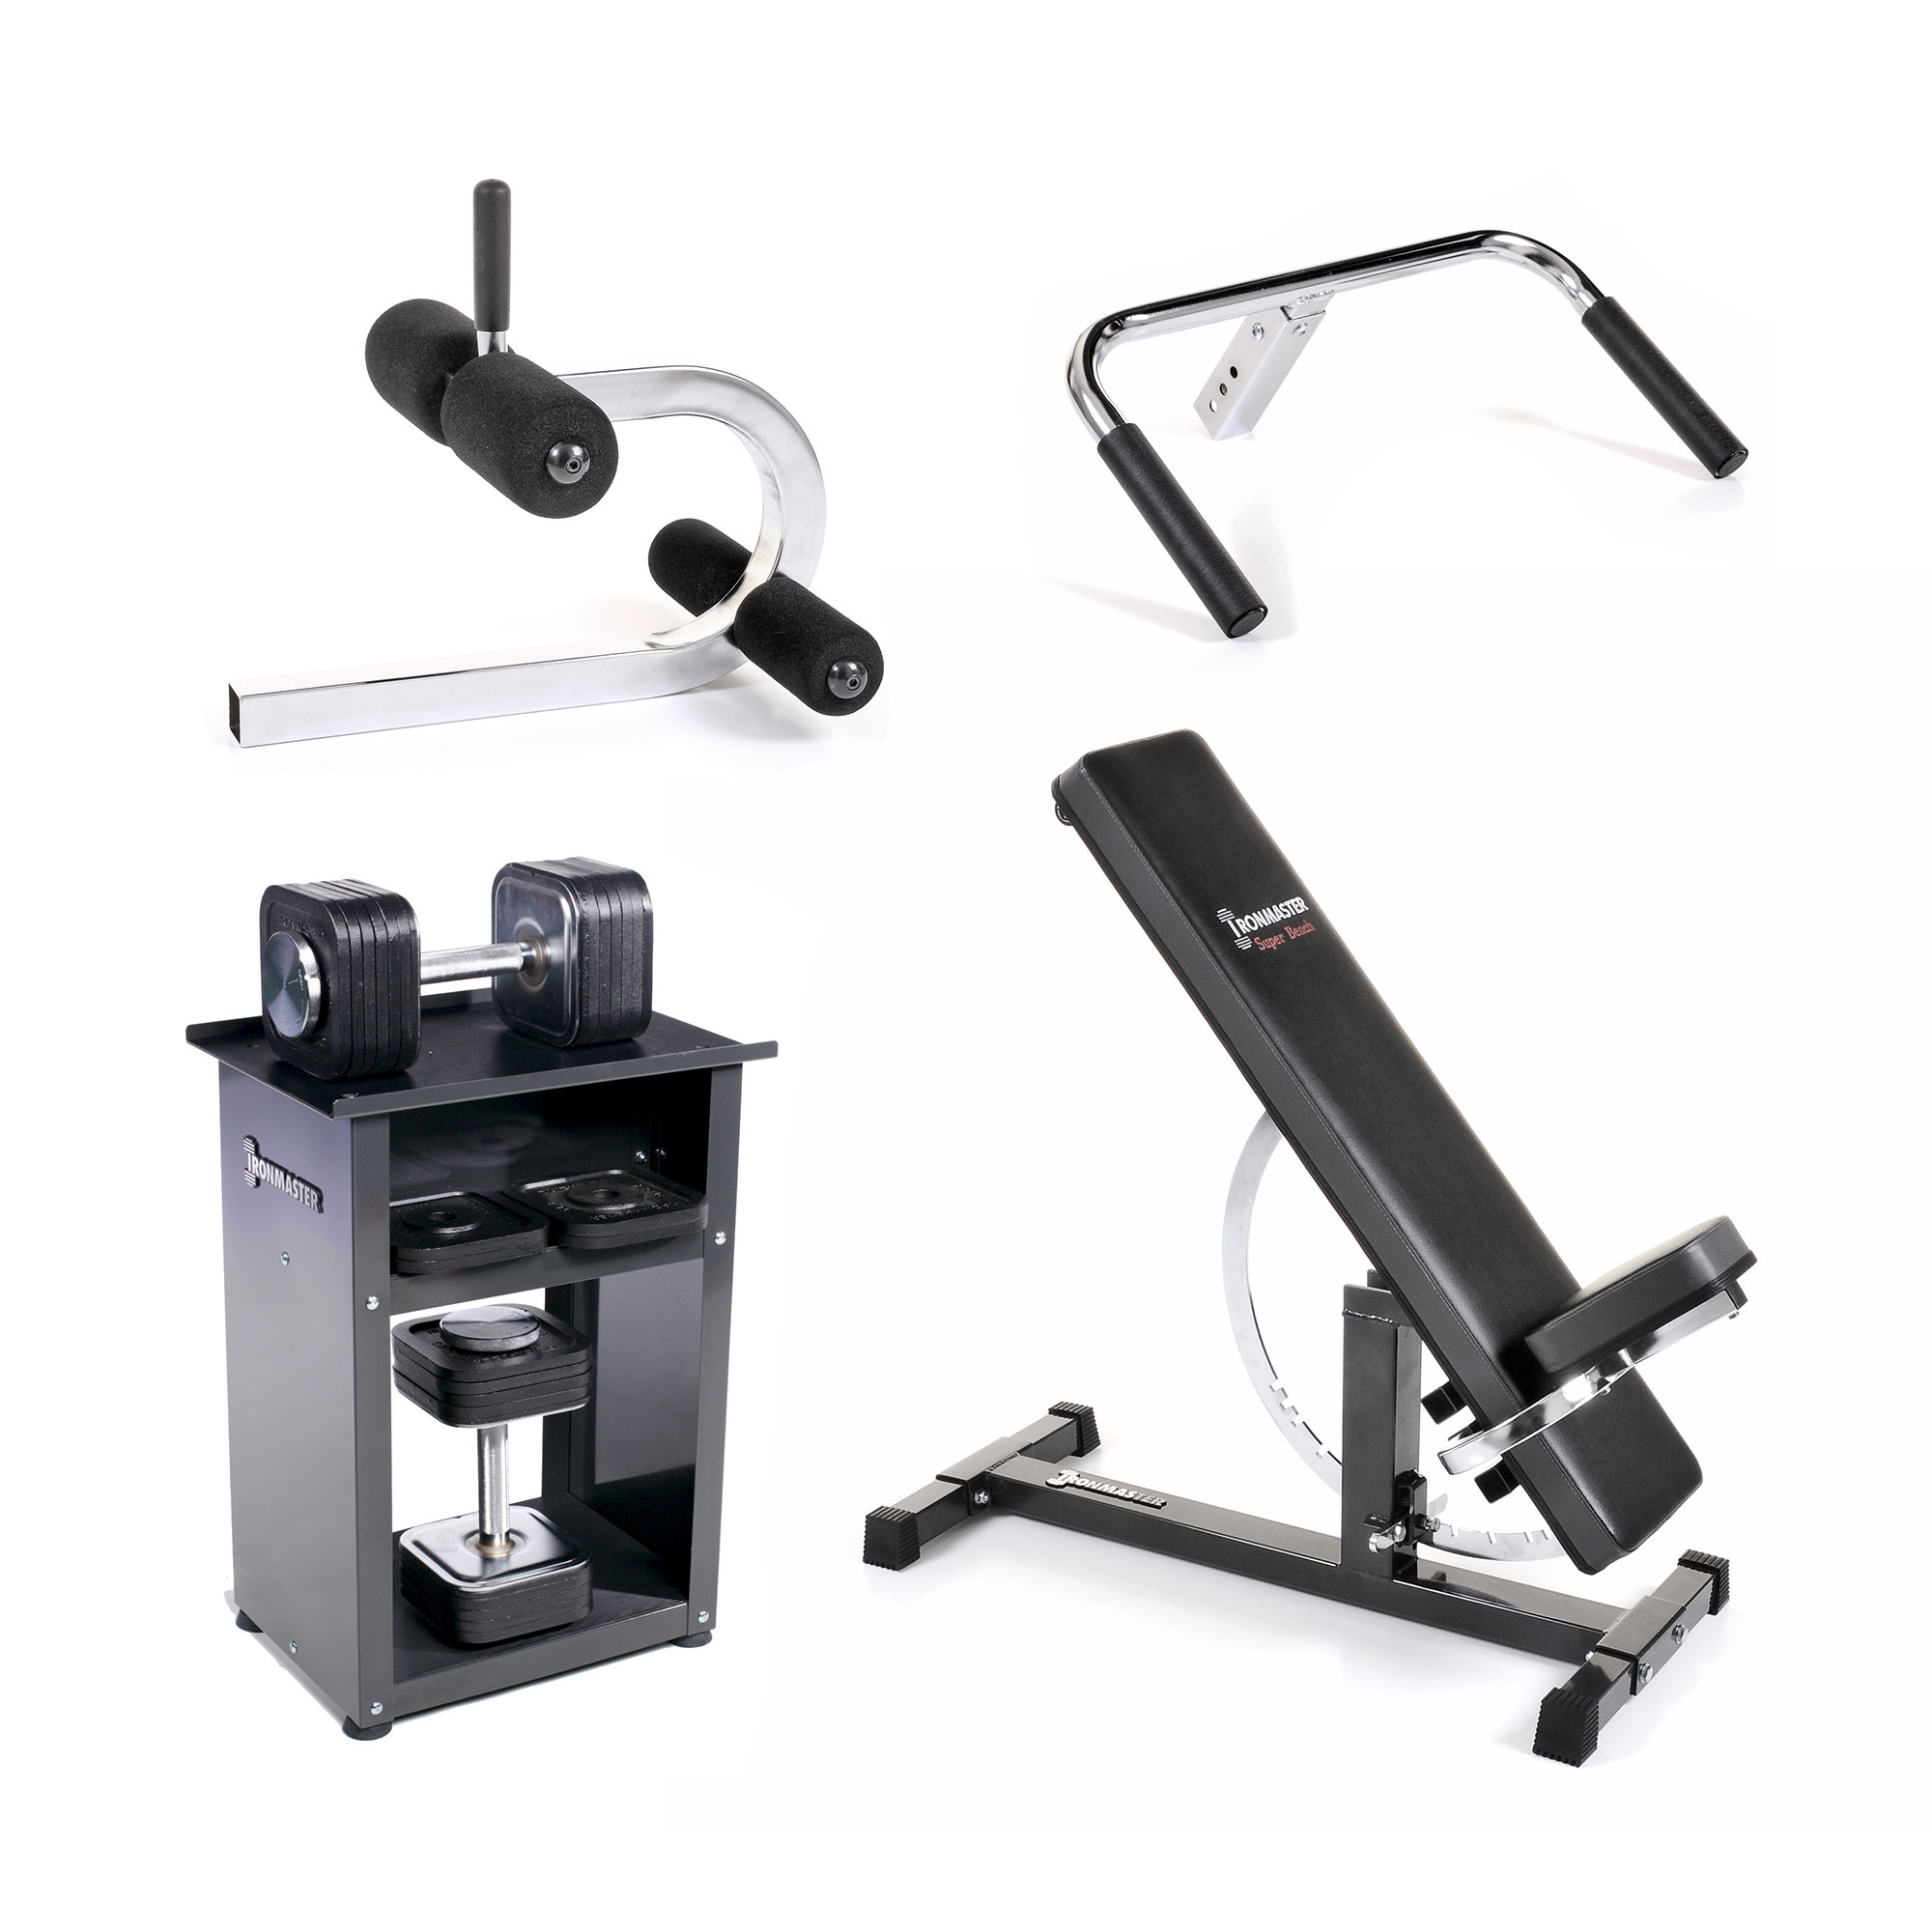 Package the compact home gym u ironmaster uk